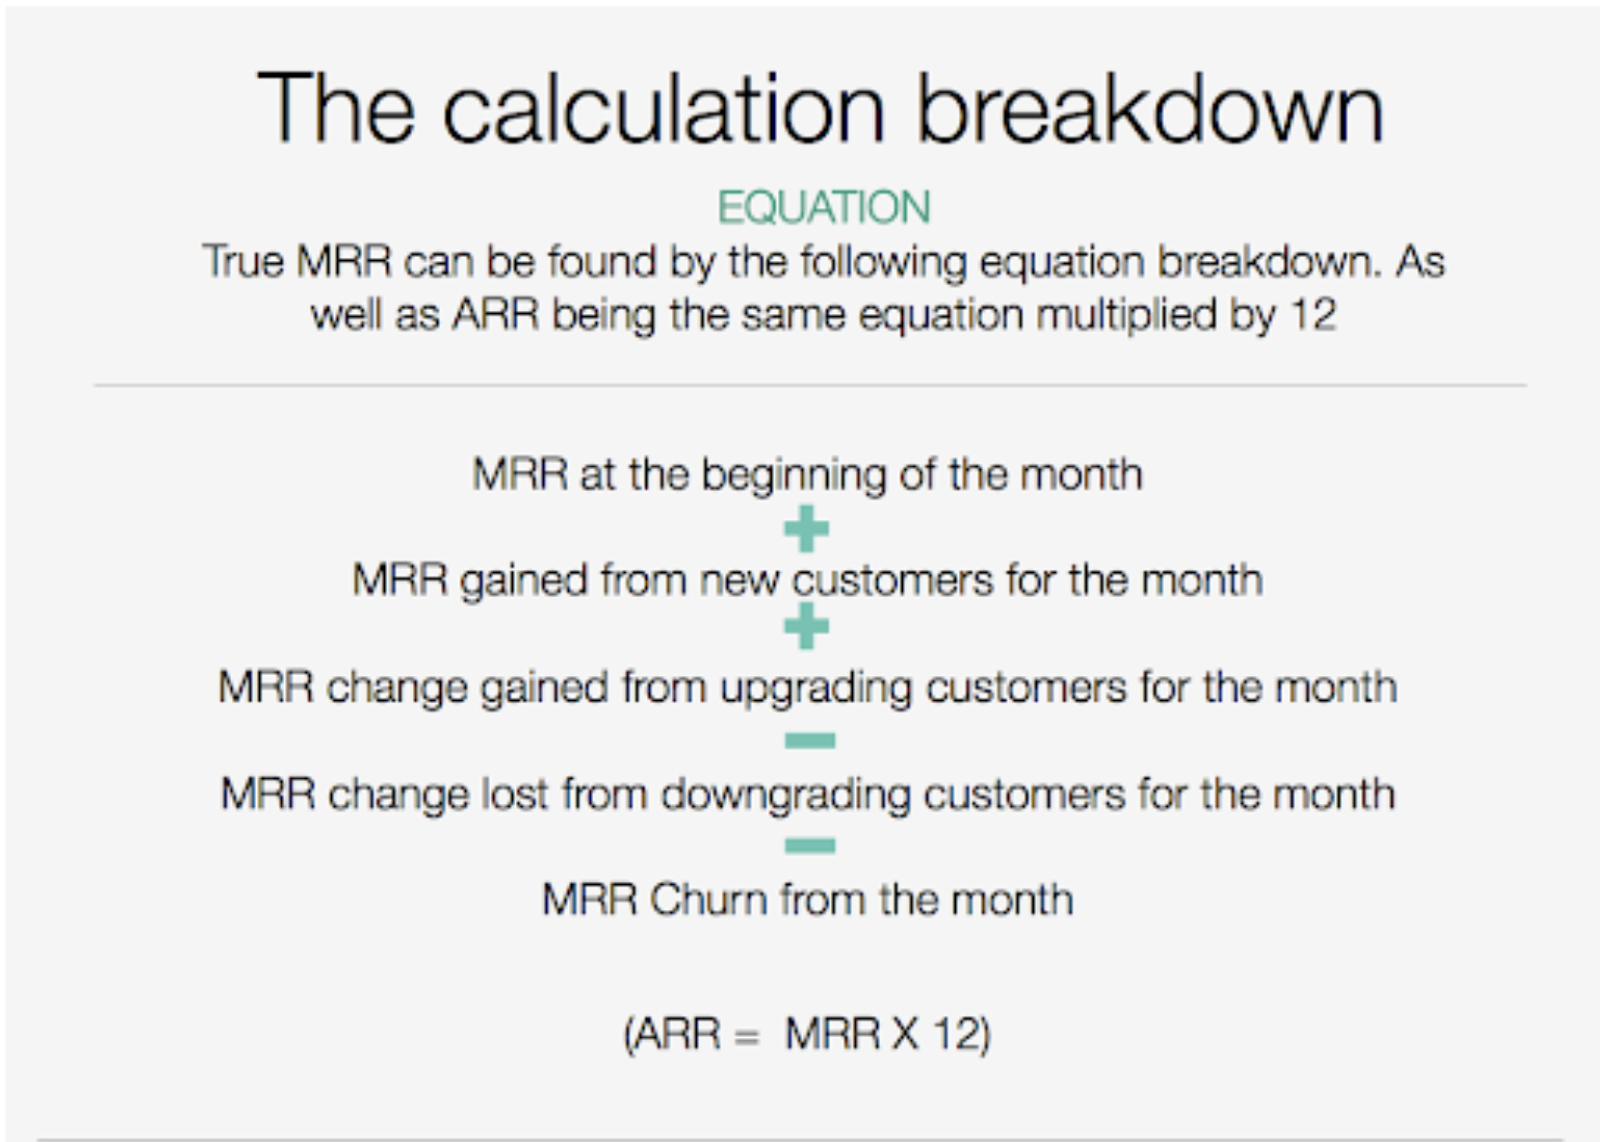 an image showing MRR calculation breakdown